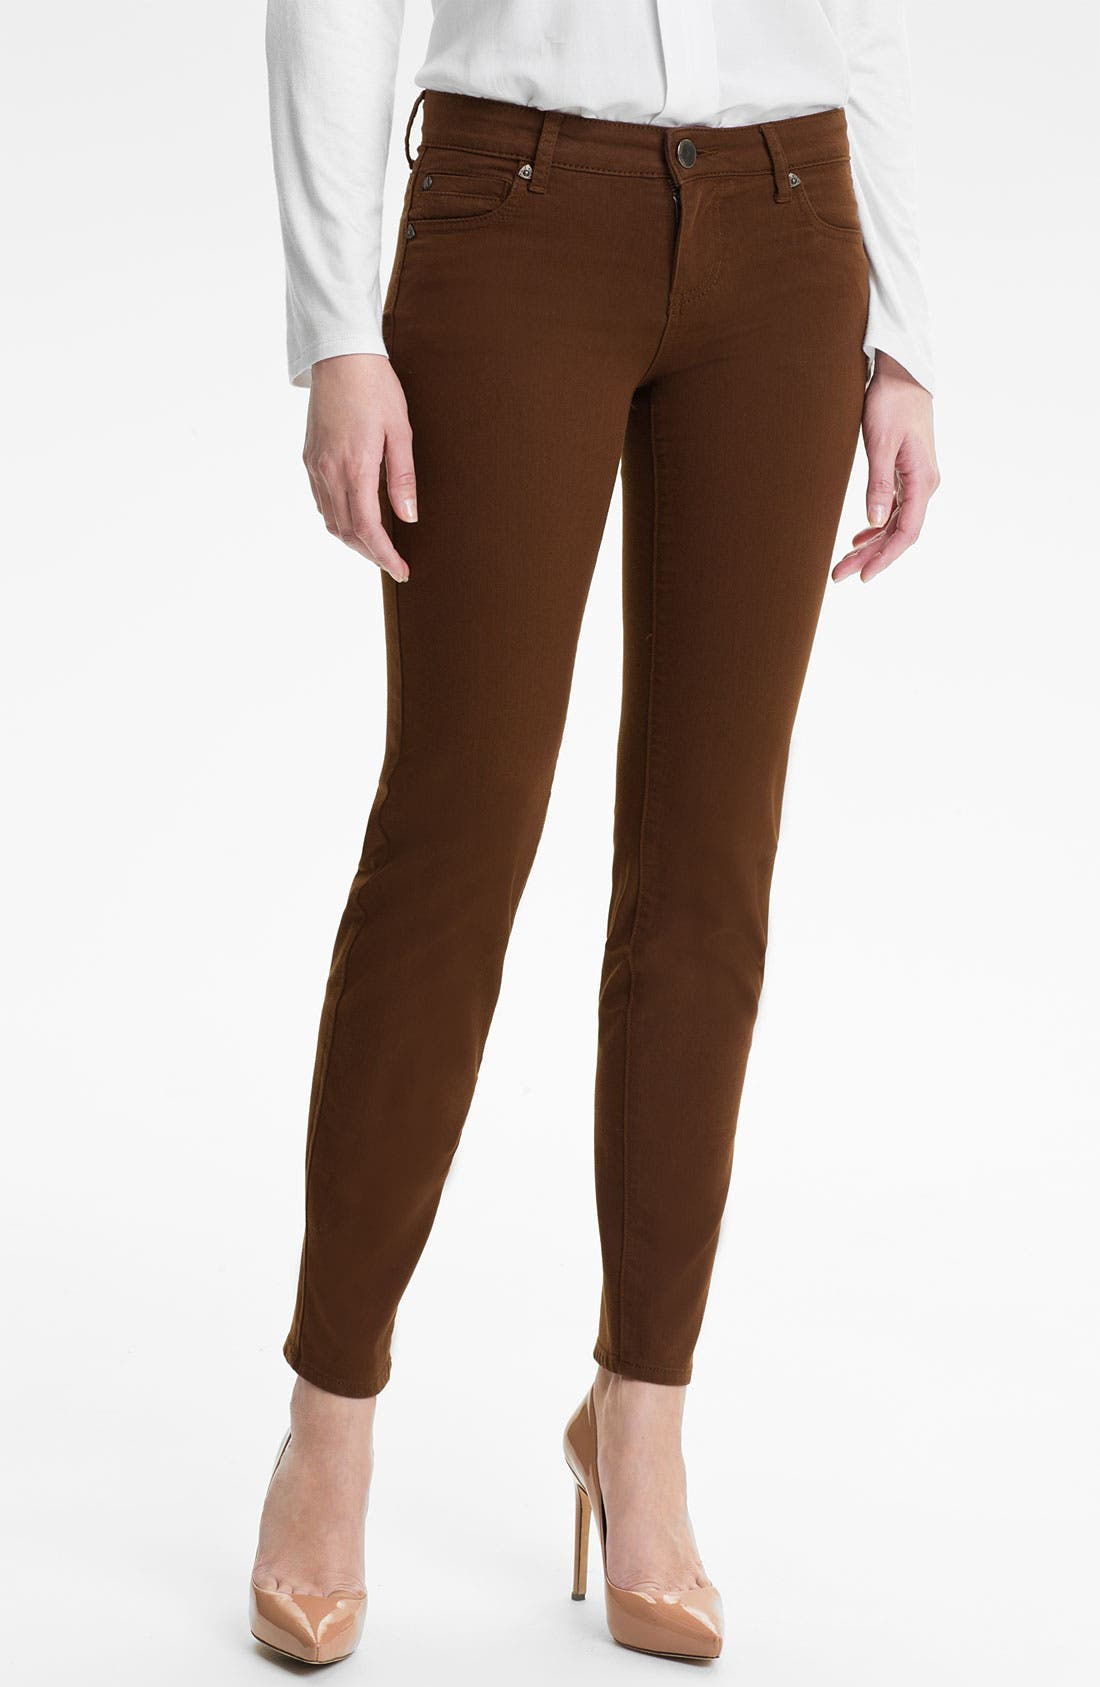 Alternate Image 1 Selected - KUT from the Kloth 'Diana' Colored Skinny Jeans